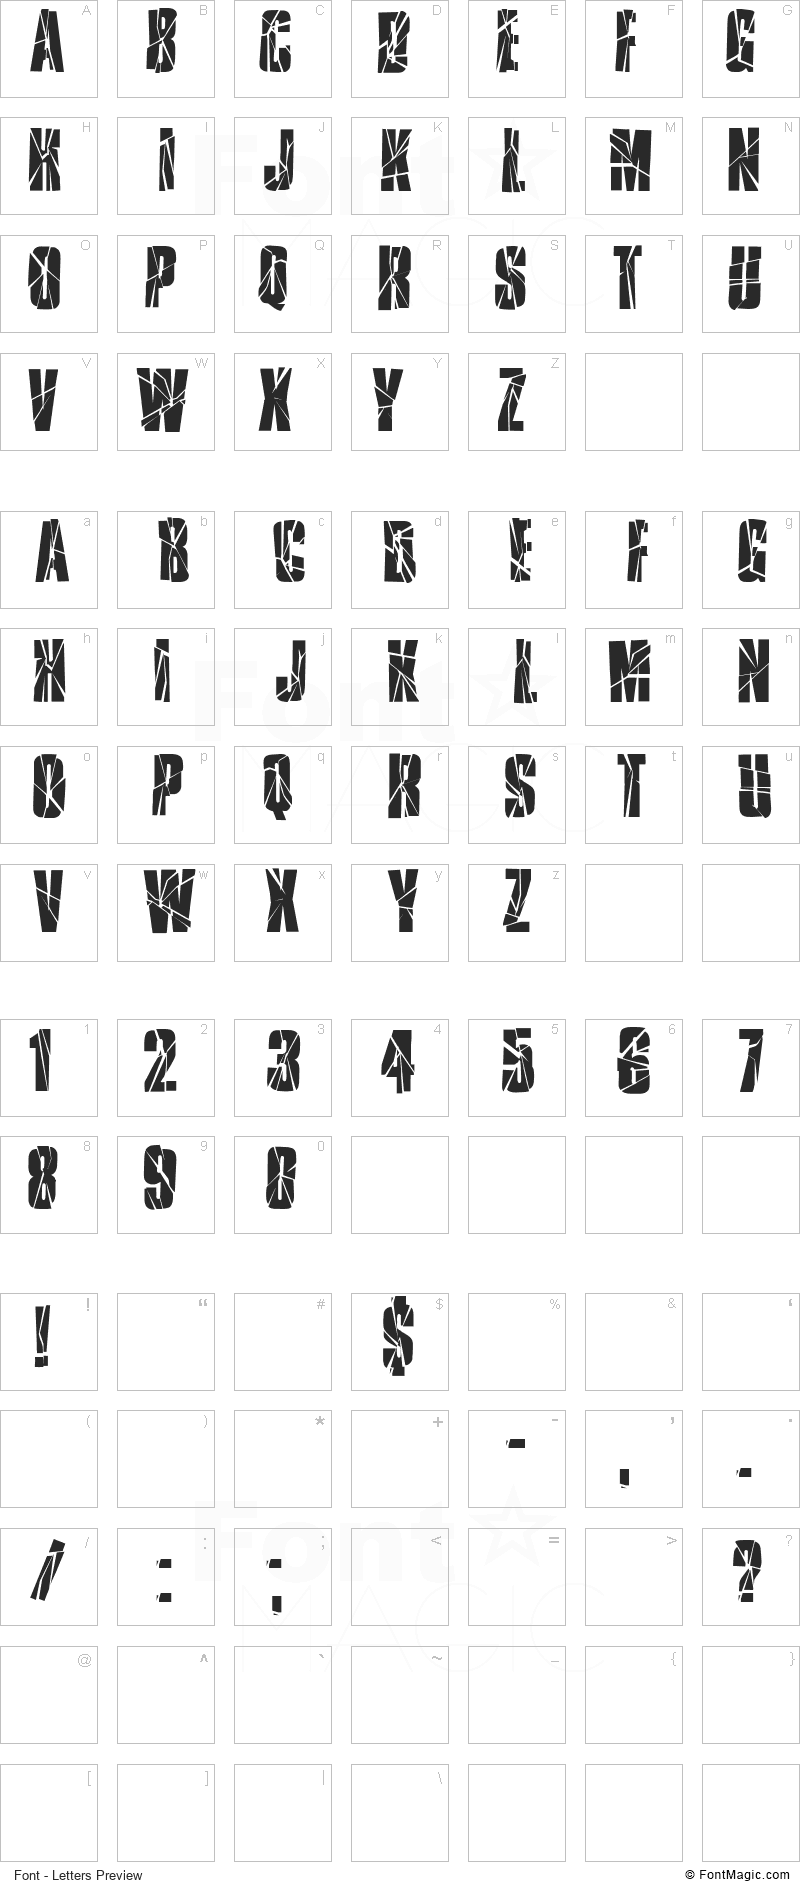 Ruptured Sans Font - All Latters Preview Chart